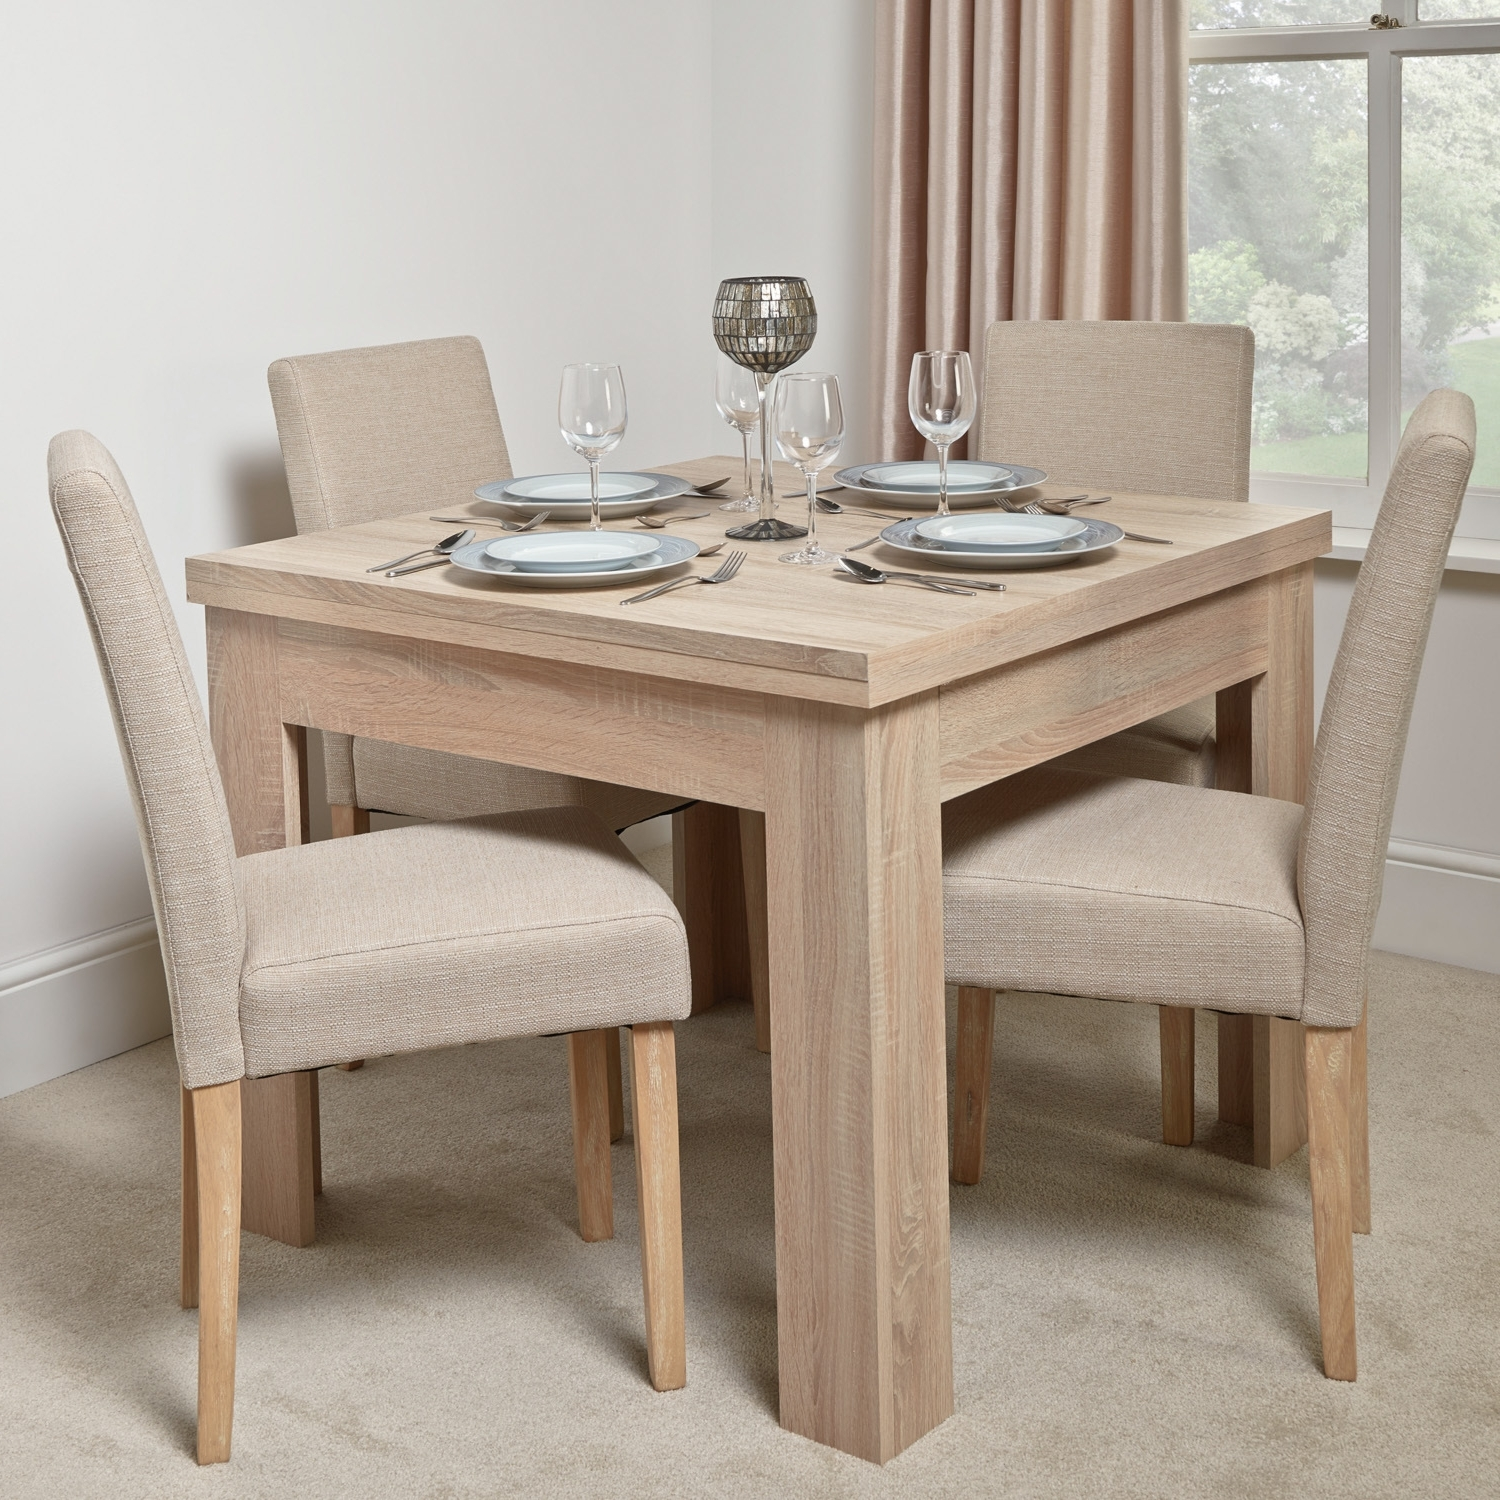 Most Current Calpe Flip Extending Dining Table Pertaining To Extending Dining Room Tables And Chairs (Gallery 7 of 25)